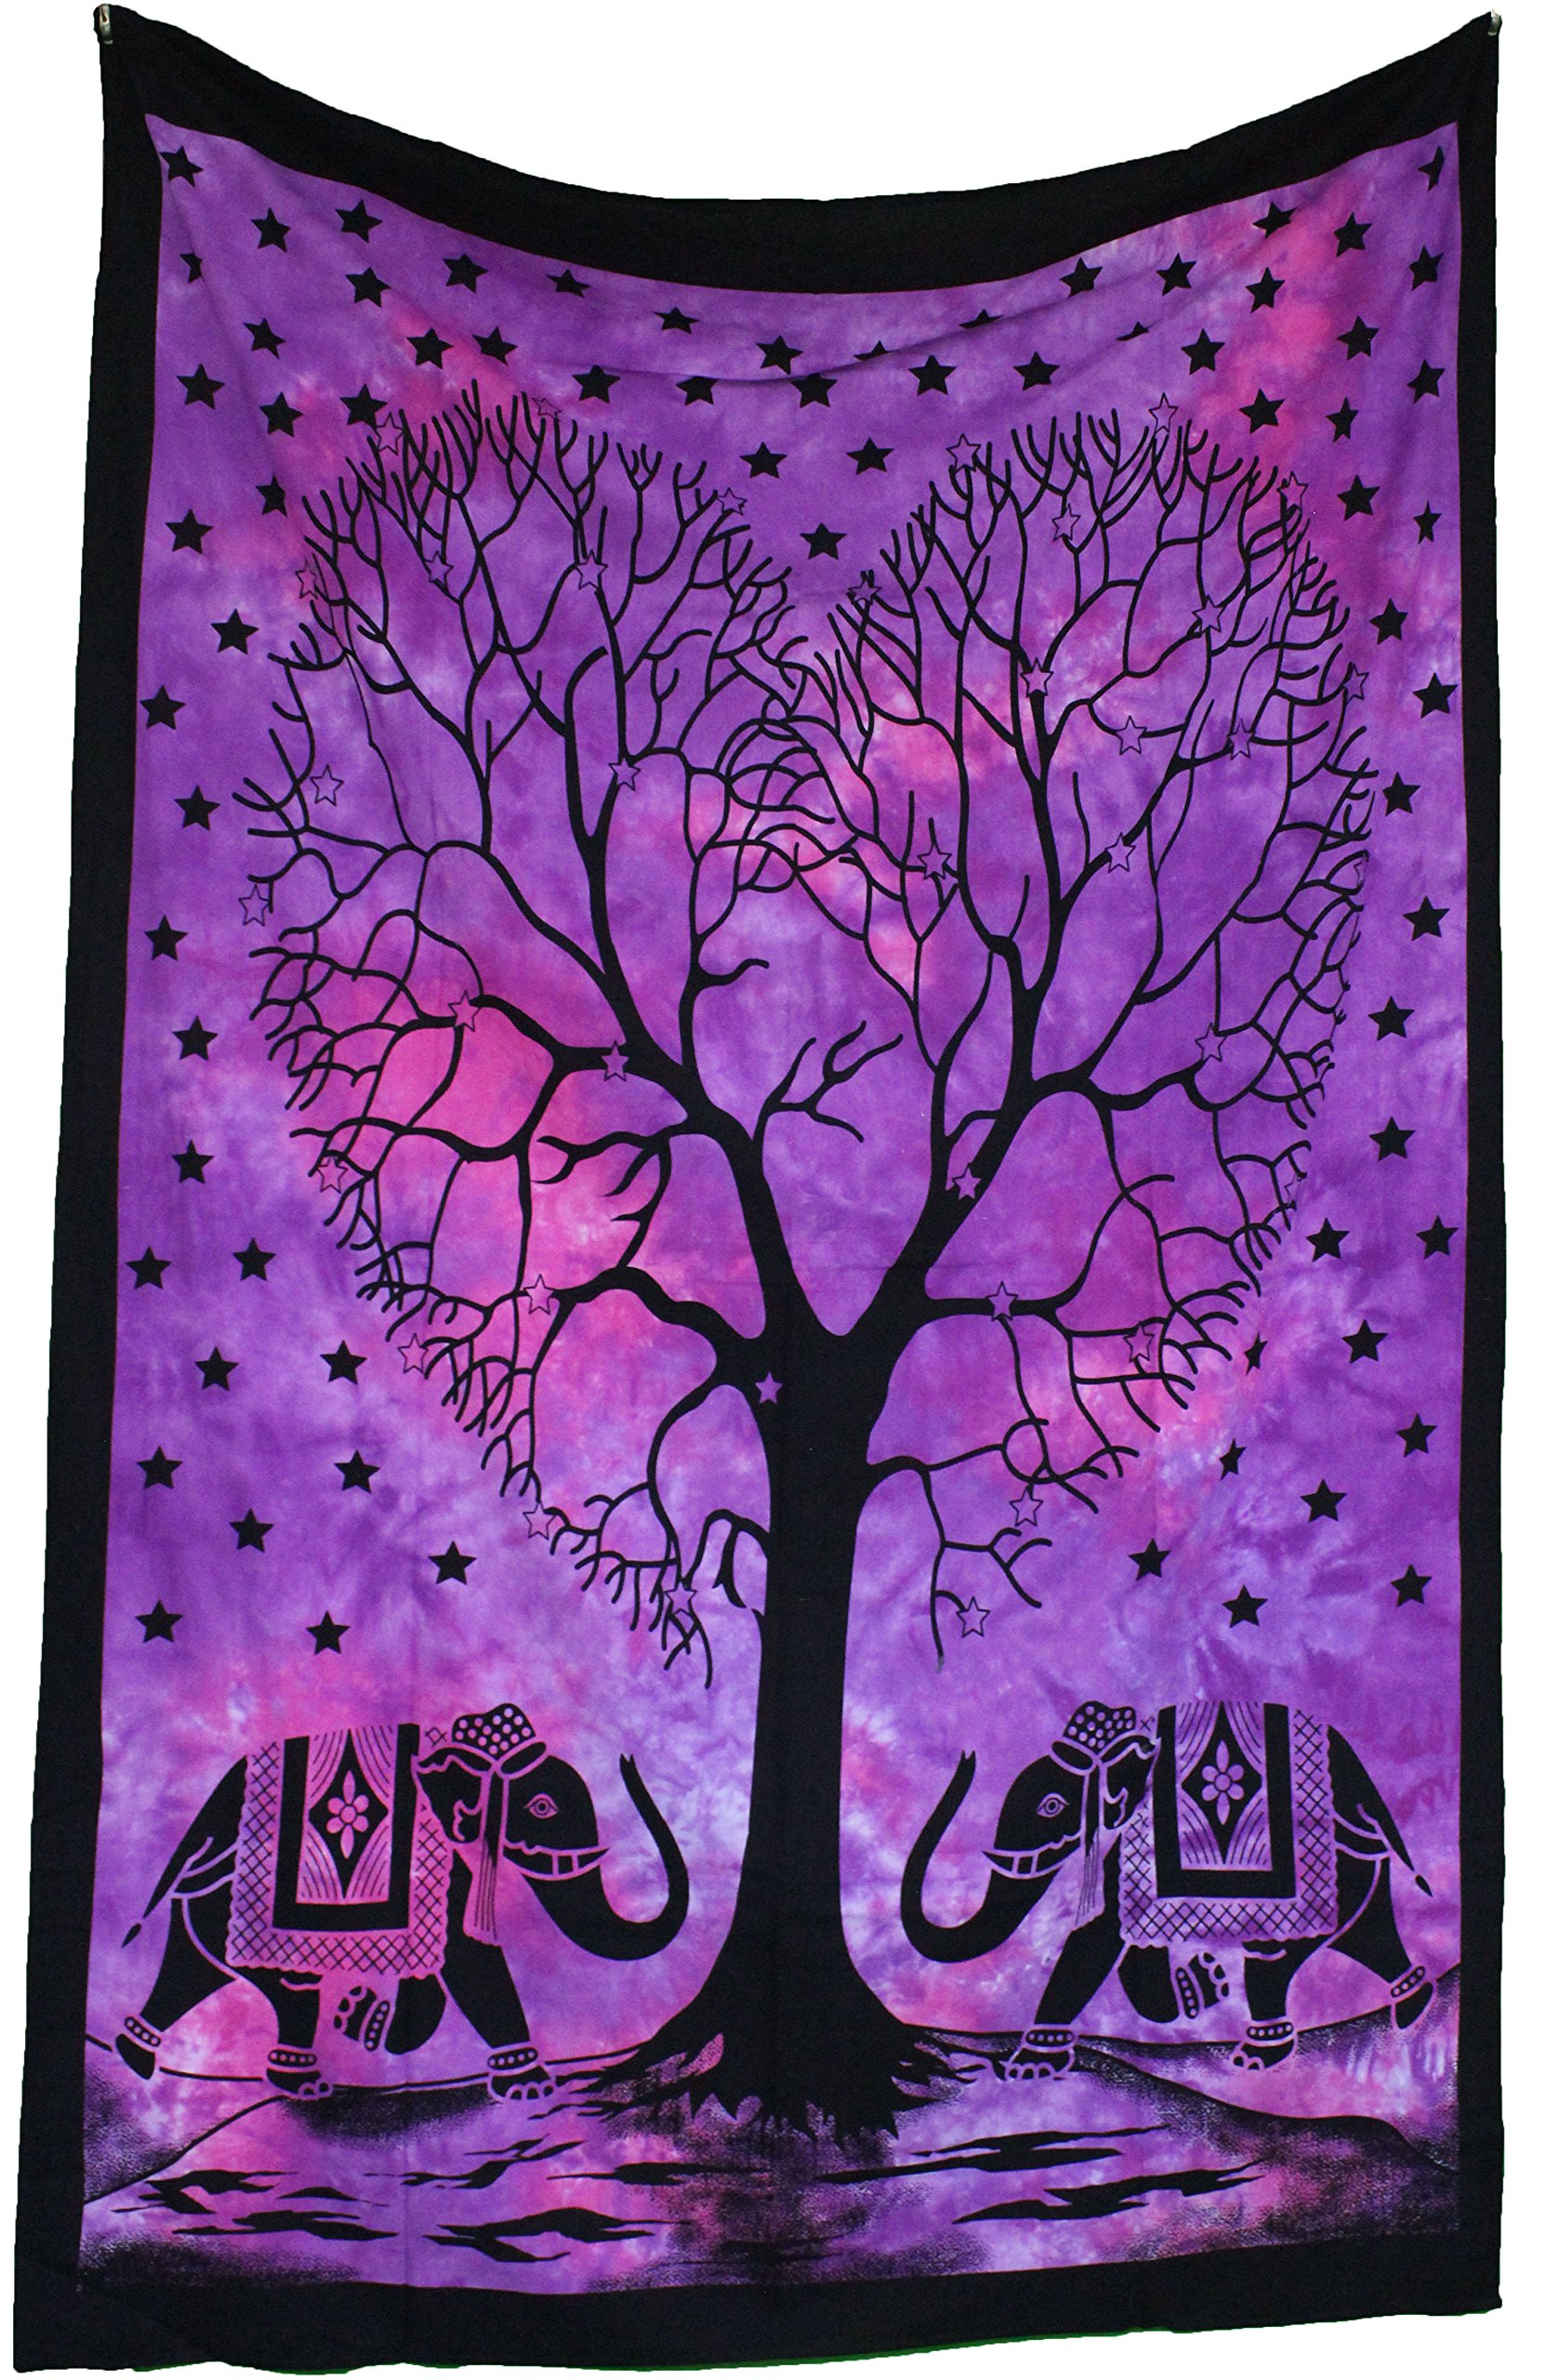 Amitus Exports TM Premium Quality 1 X Heart Tree - Border Tie Dye Purple Color Size 81''X53'' (Approx.) Inches Indian Mandala Tapestry Thin Cotton Fabric Throws (Handmade In India)